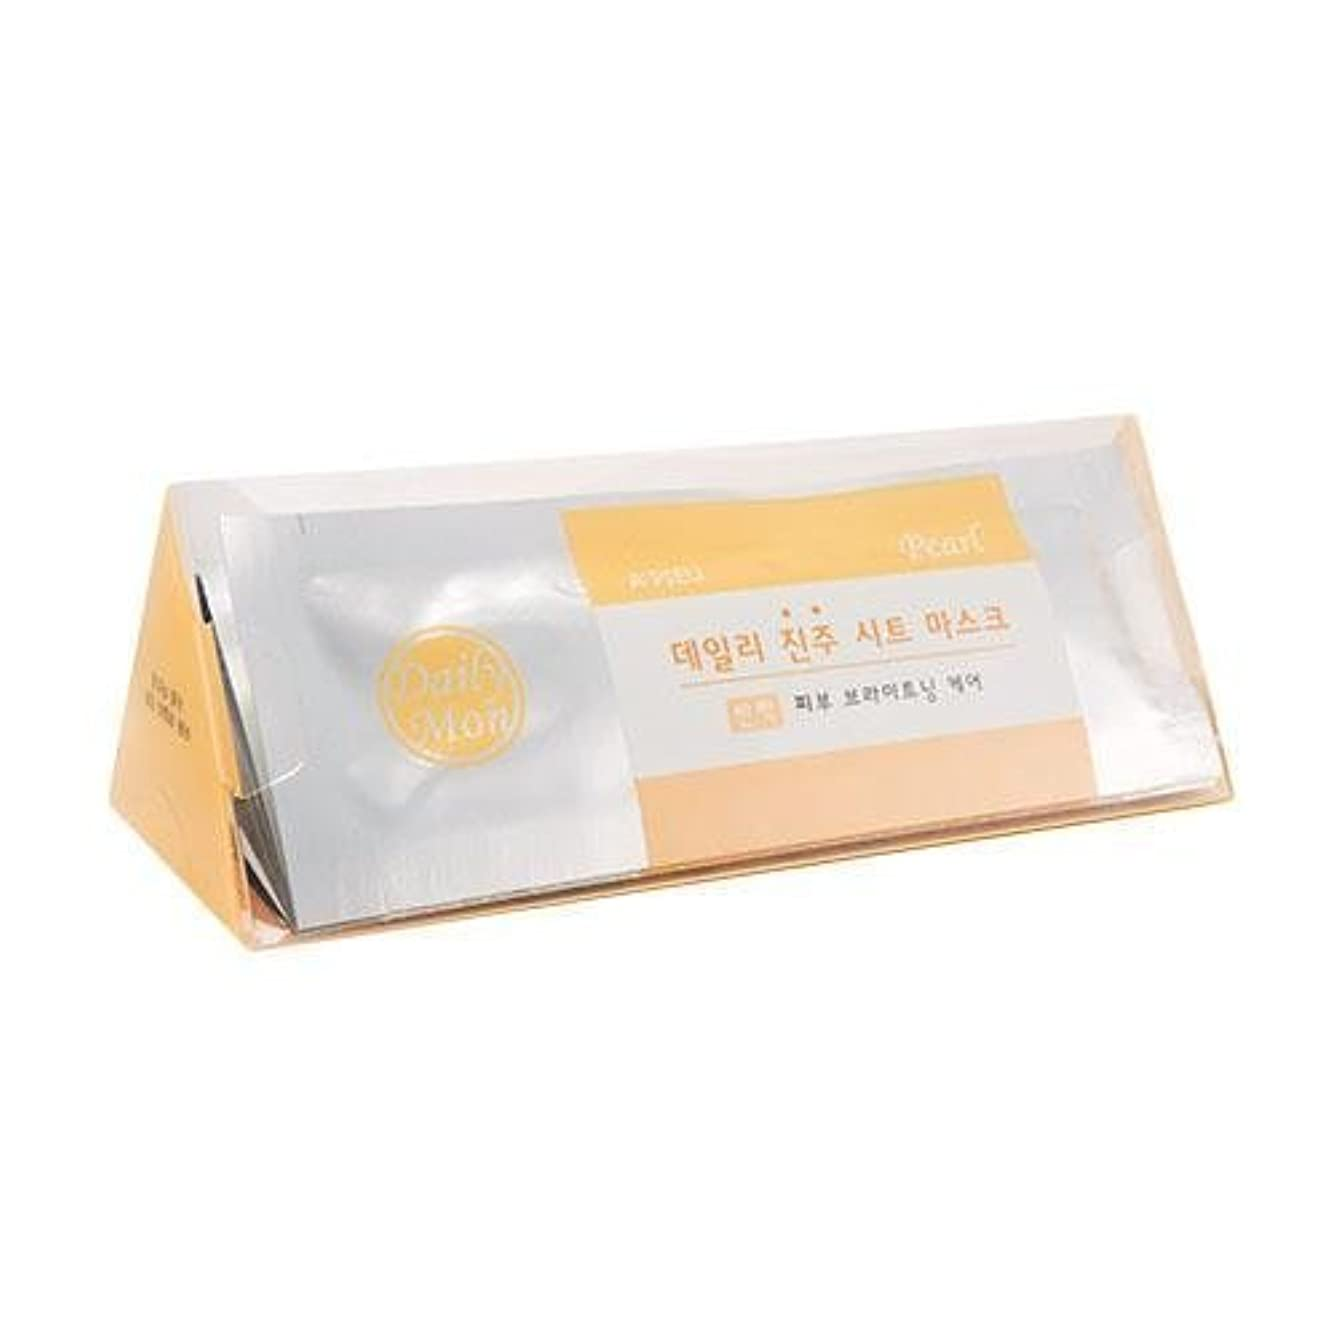 収縮大腿想定APIEU Daily Pearl Sheet Mask (7EA)/ Made in Korea